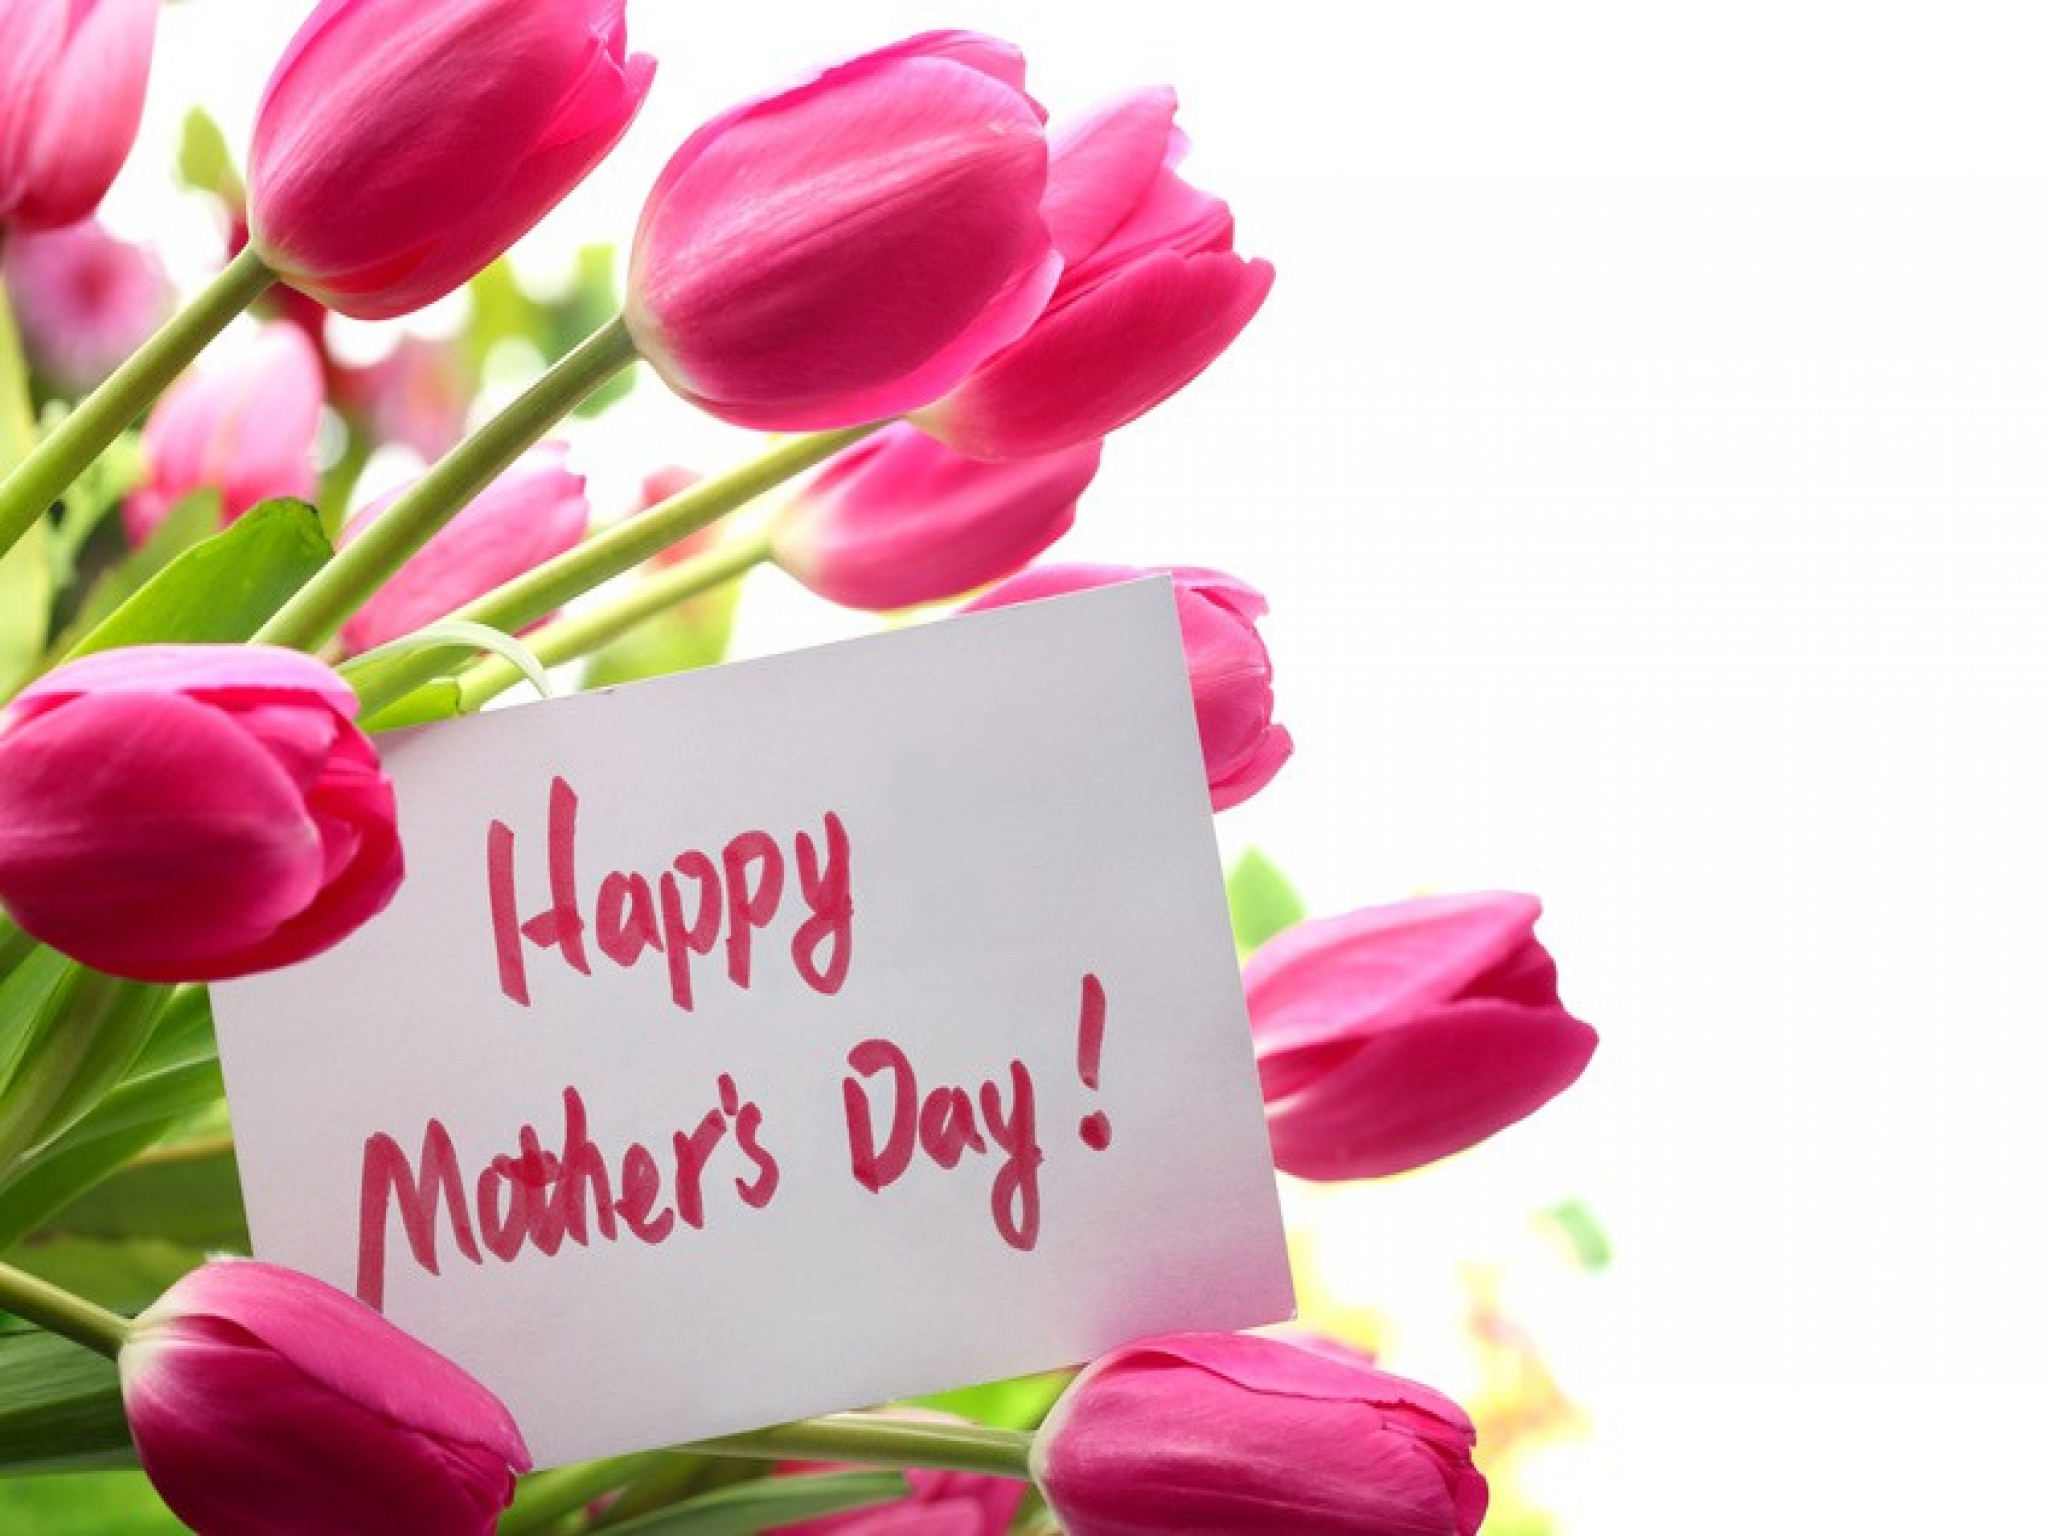 Mother's Day Wallpaper hd Free Download